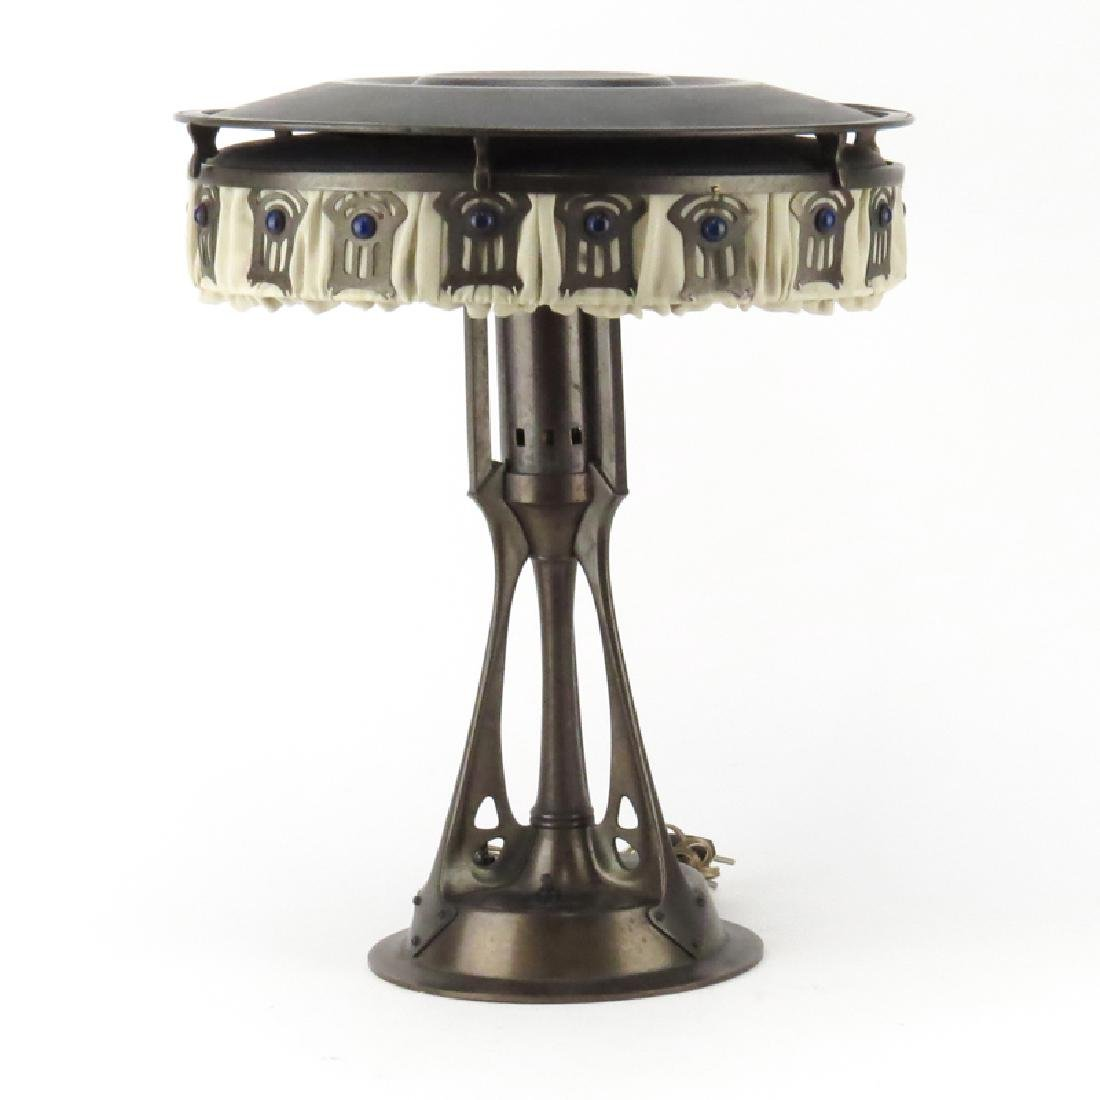 Antique Bronze Arts and Craft Desk Lamp. Decorated with